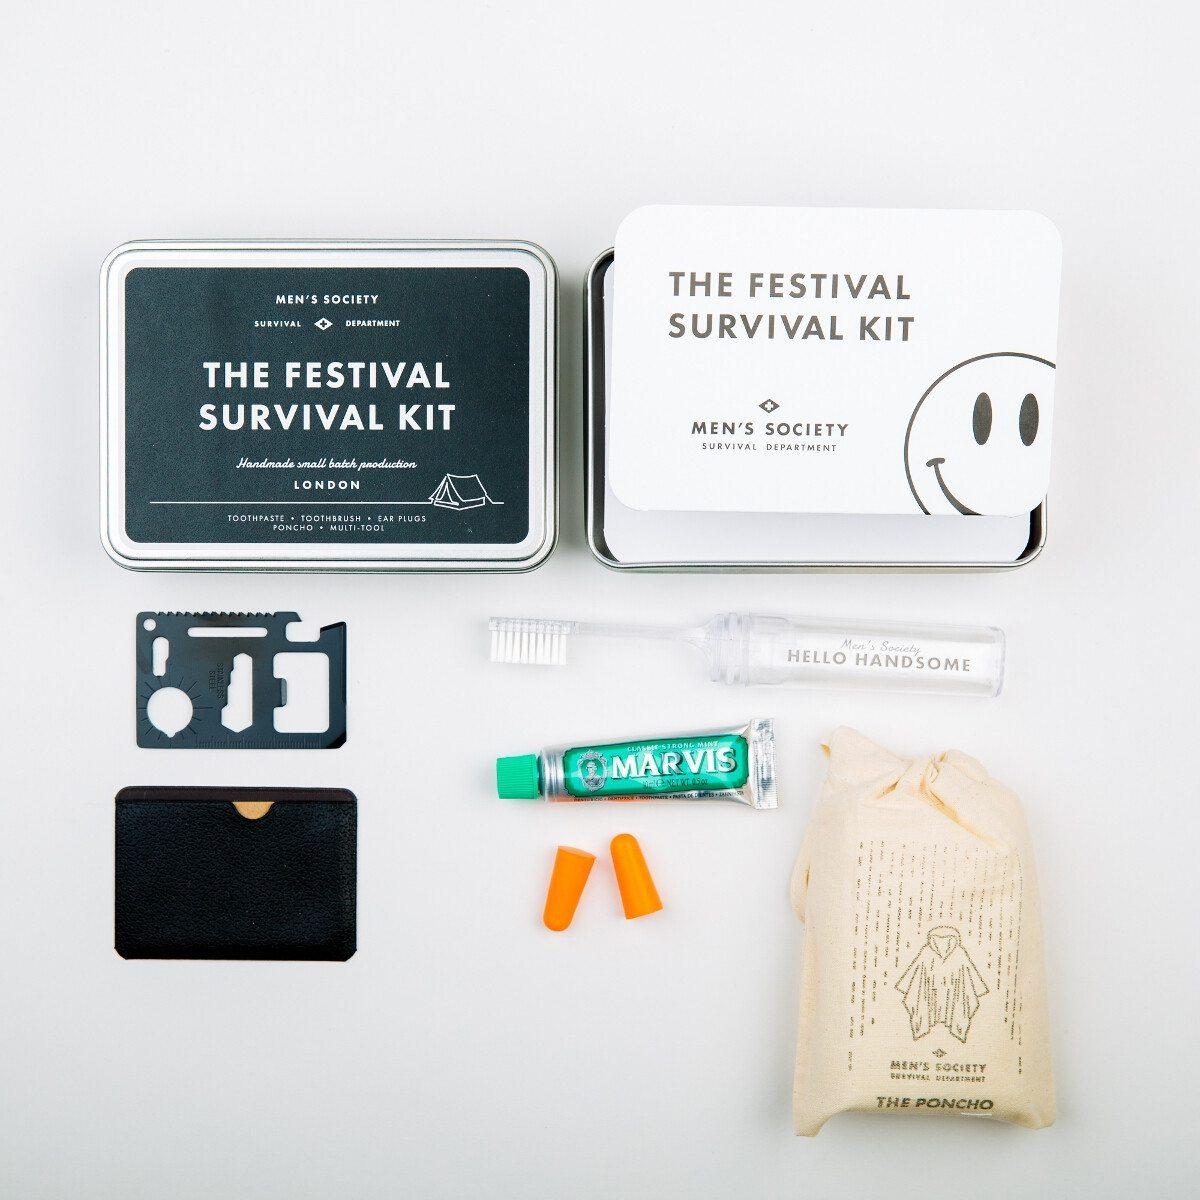 The Festival Survival Kit